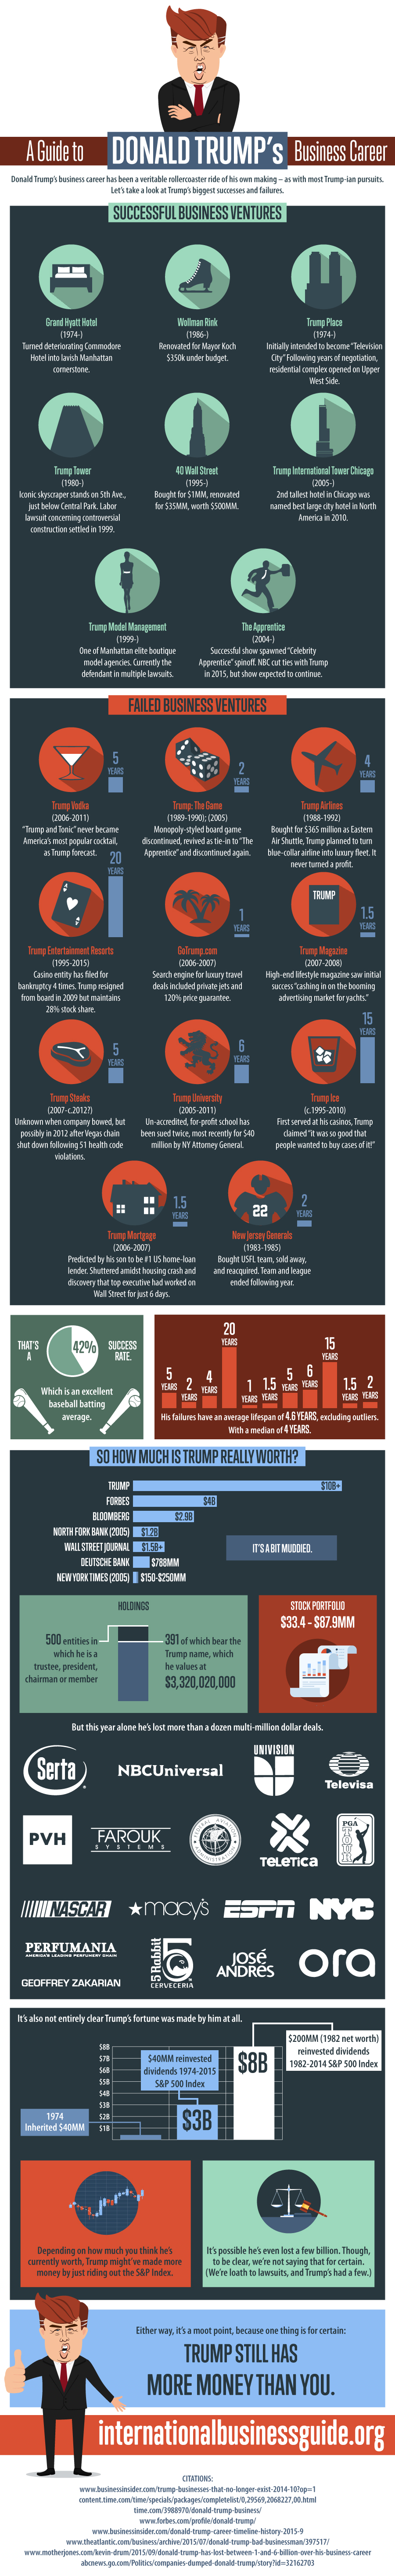 A Guide to Donald Trump's Business Career - International ...